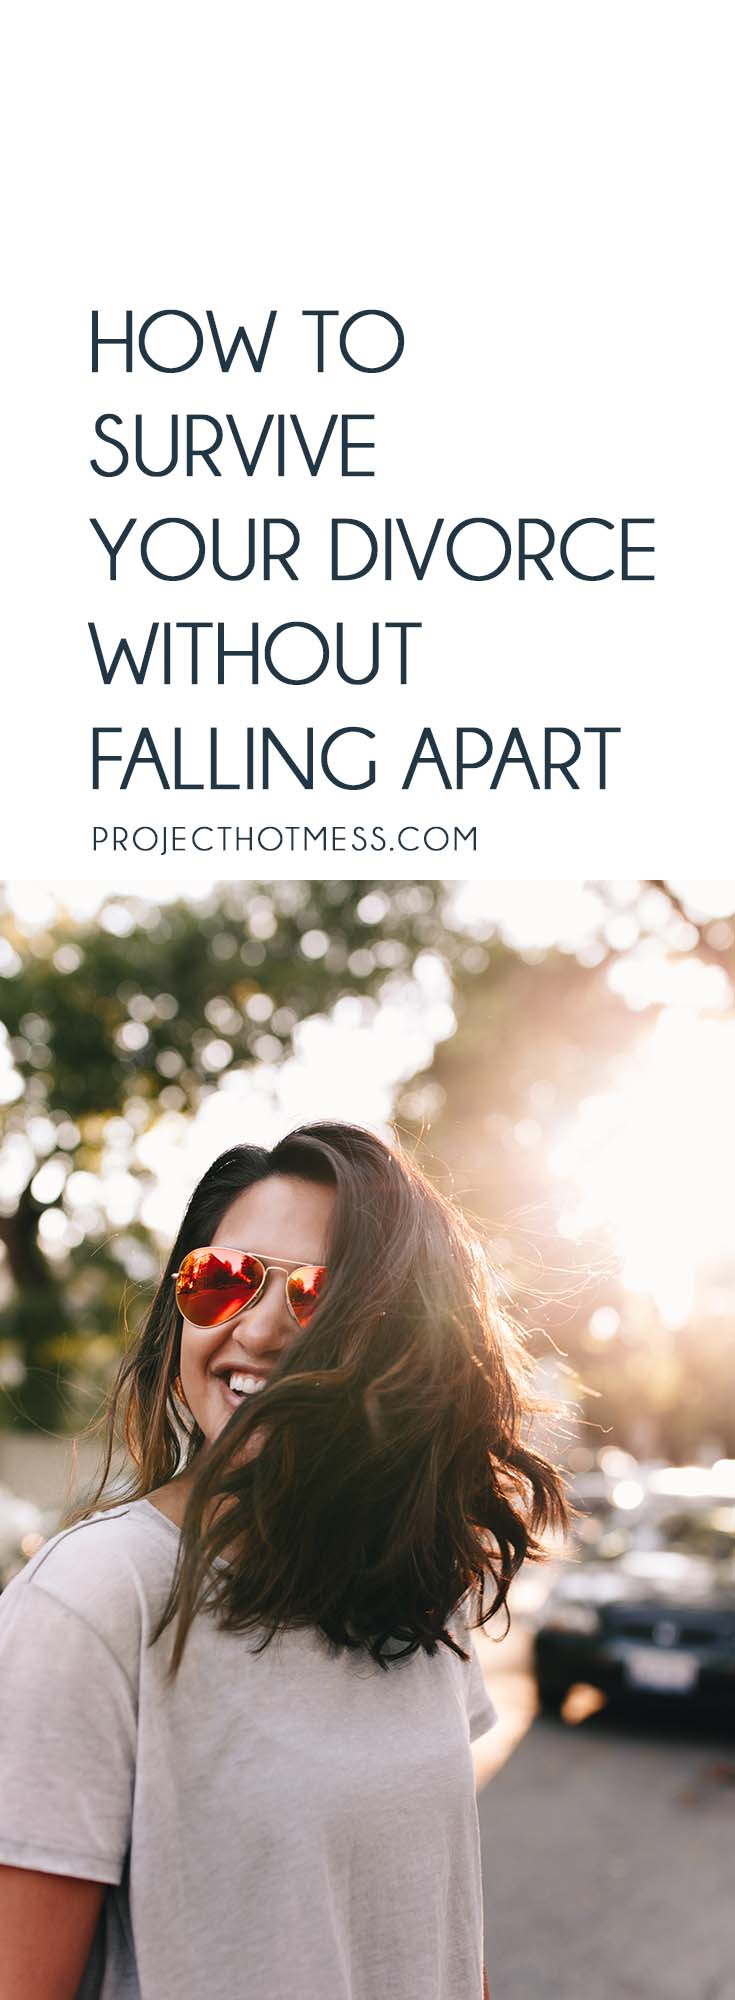 While it may not feel like it in the early stages, it's definitely possible to survive your divorce without falling apart. You can even survive and feel amazing! Divorce | Survive Your Divorce | How To Deal With Divorce | Separation | Marriage | Marriage Advice | Marriage Problems | Confidence | Boost Your Confidence | Become More Confident